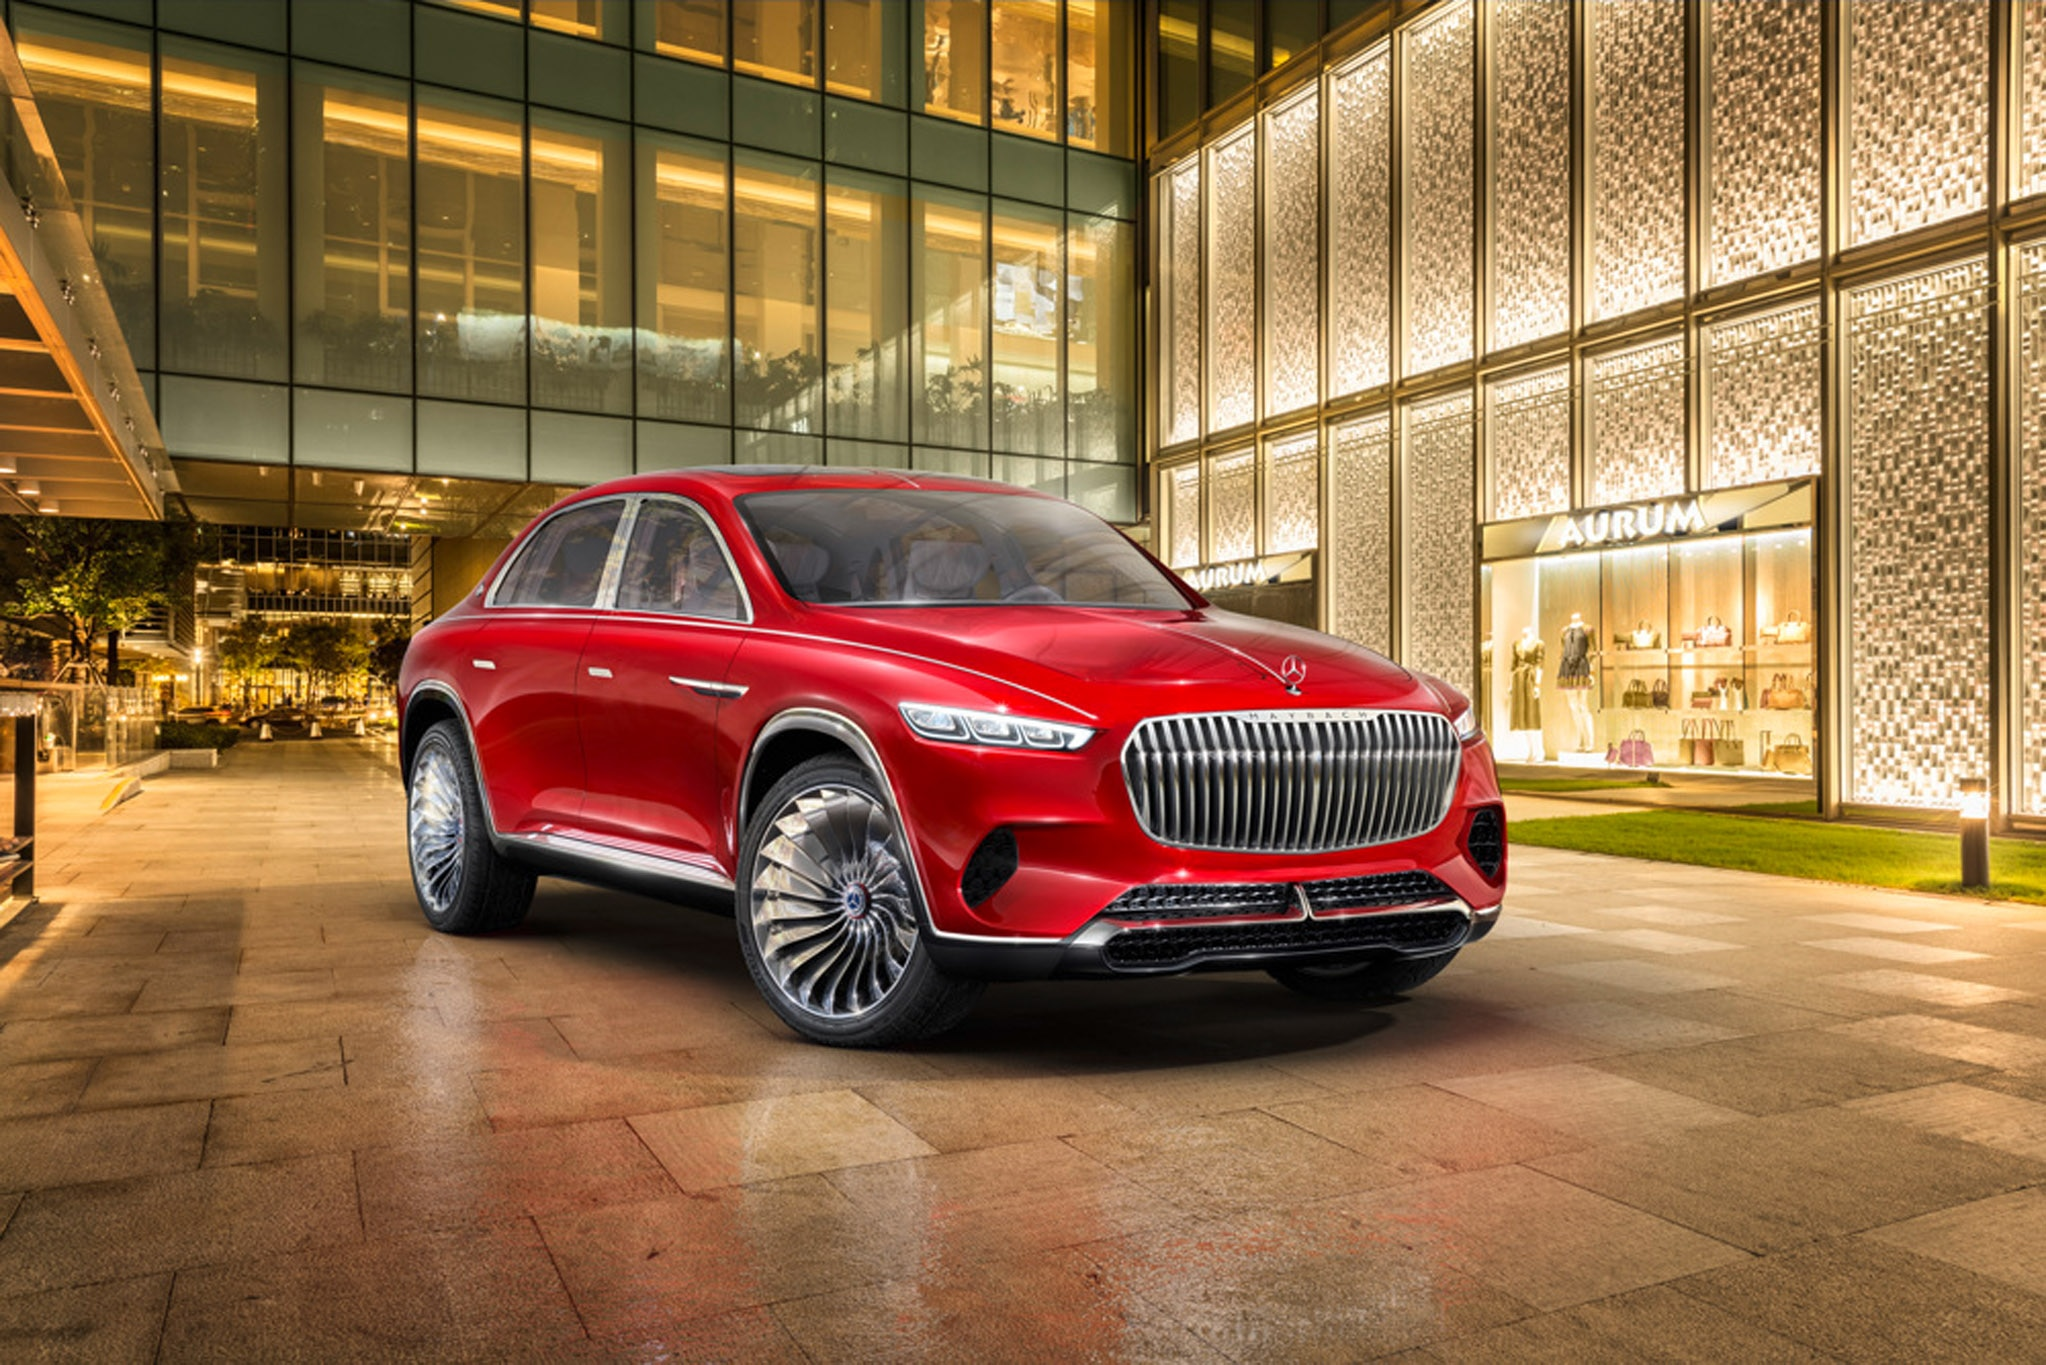 Sweet Home Alabama: The Mercedes-Maybach SUV Will be Built in America